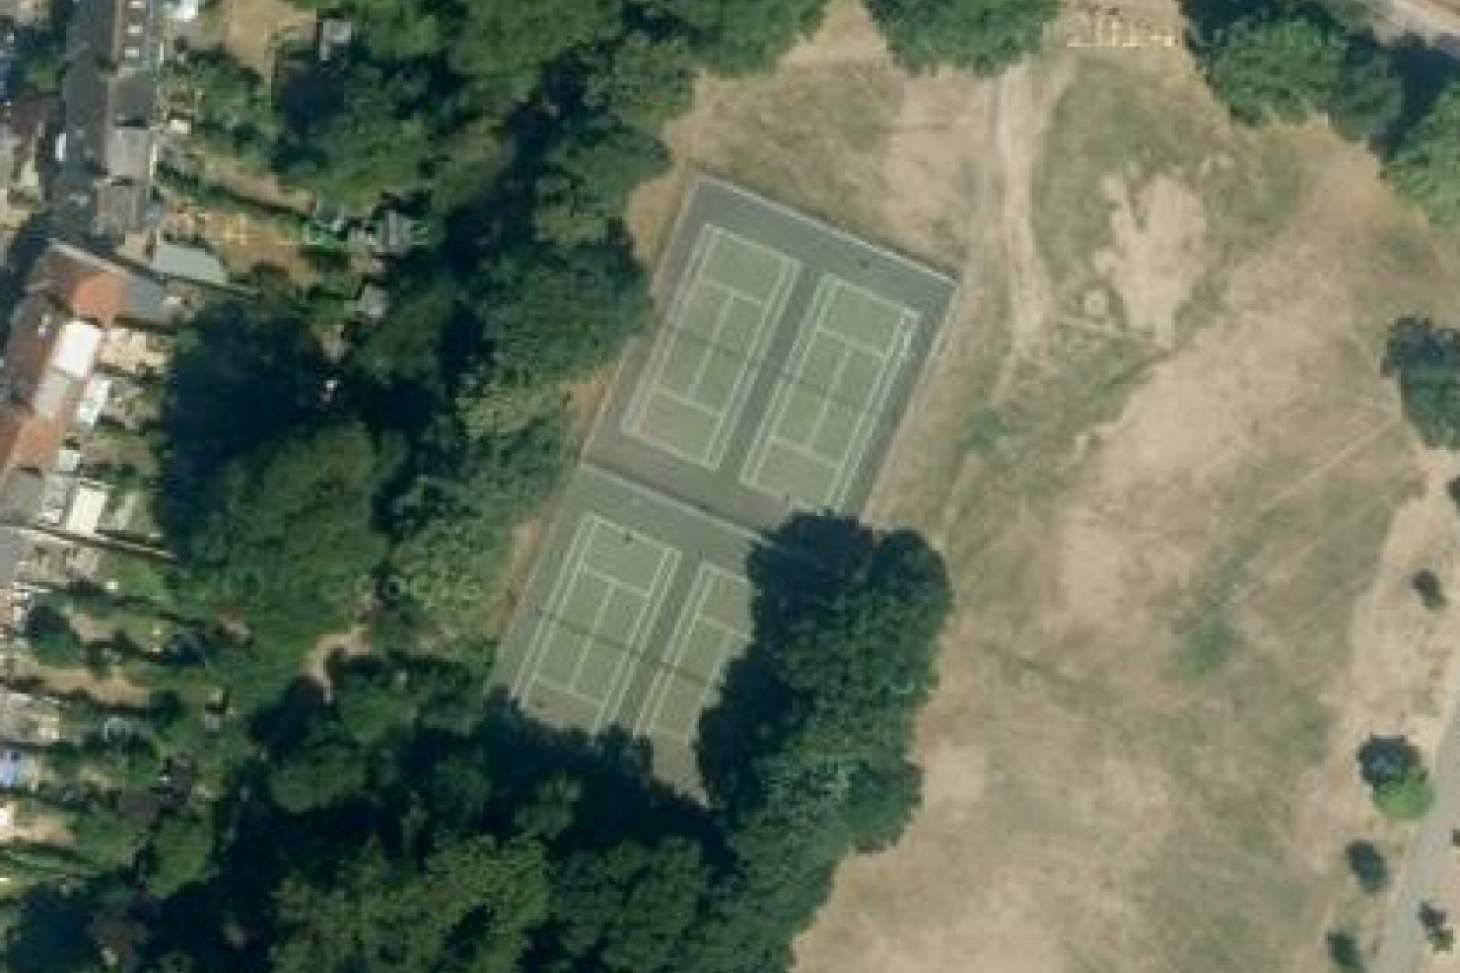 Palewell Common Outdoor | Hard (macadam) tennis court